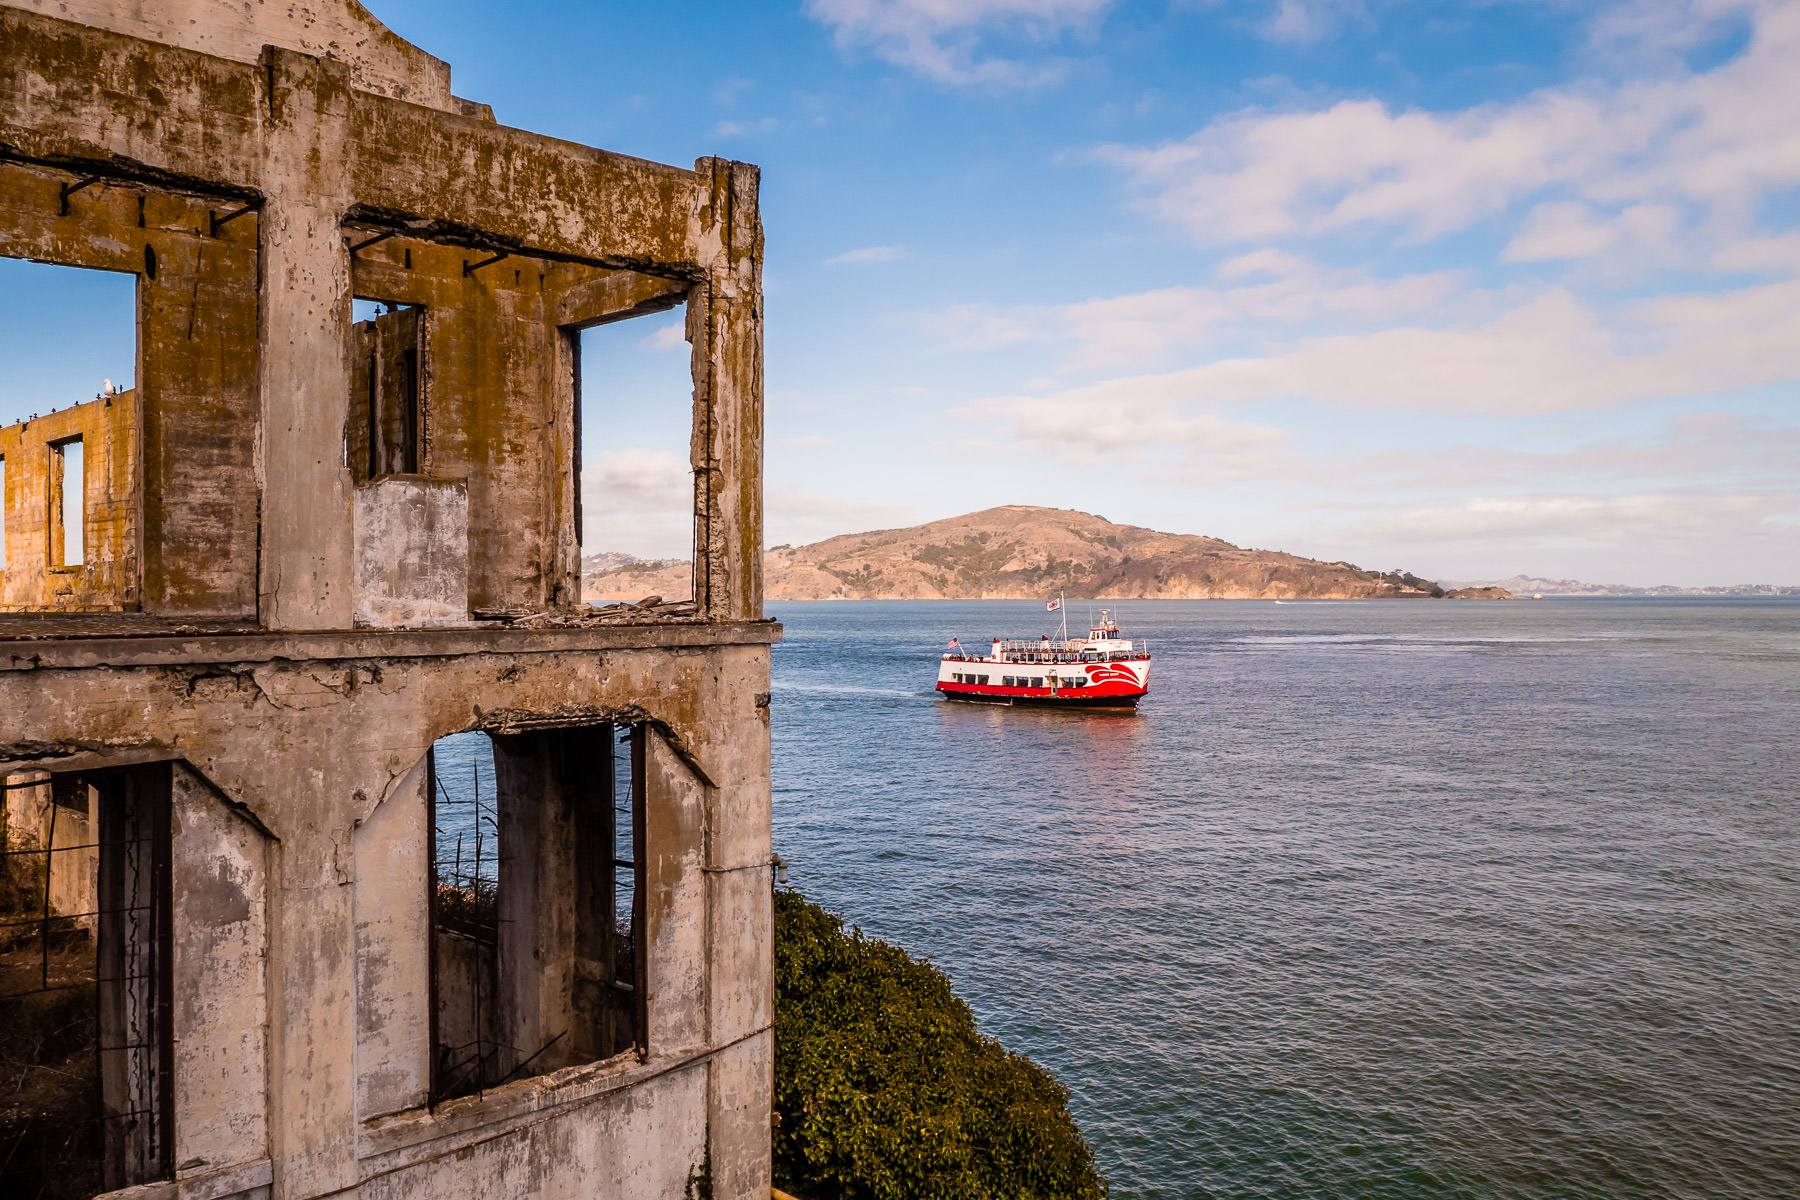 A tour boat sails past ruins at Alcatraz Federal Penitentiary in San Francisco Bay.